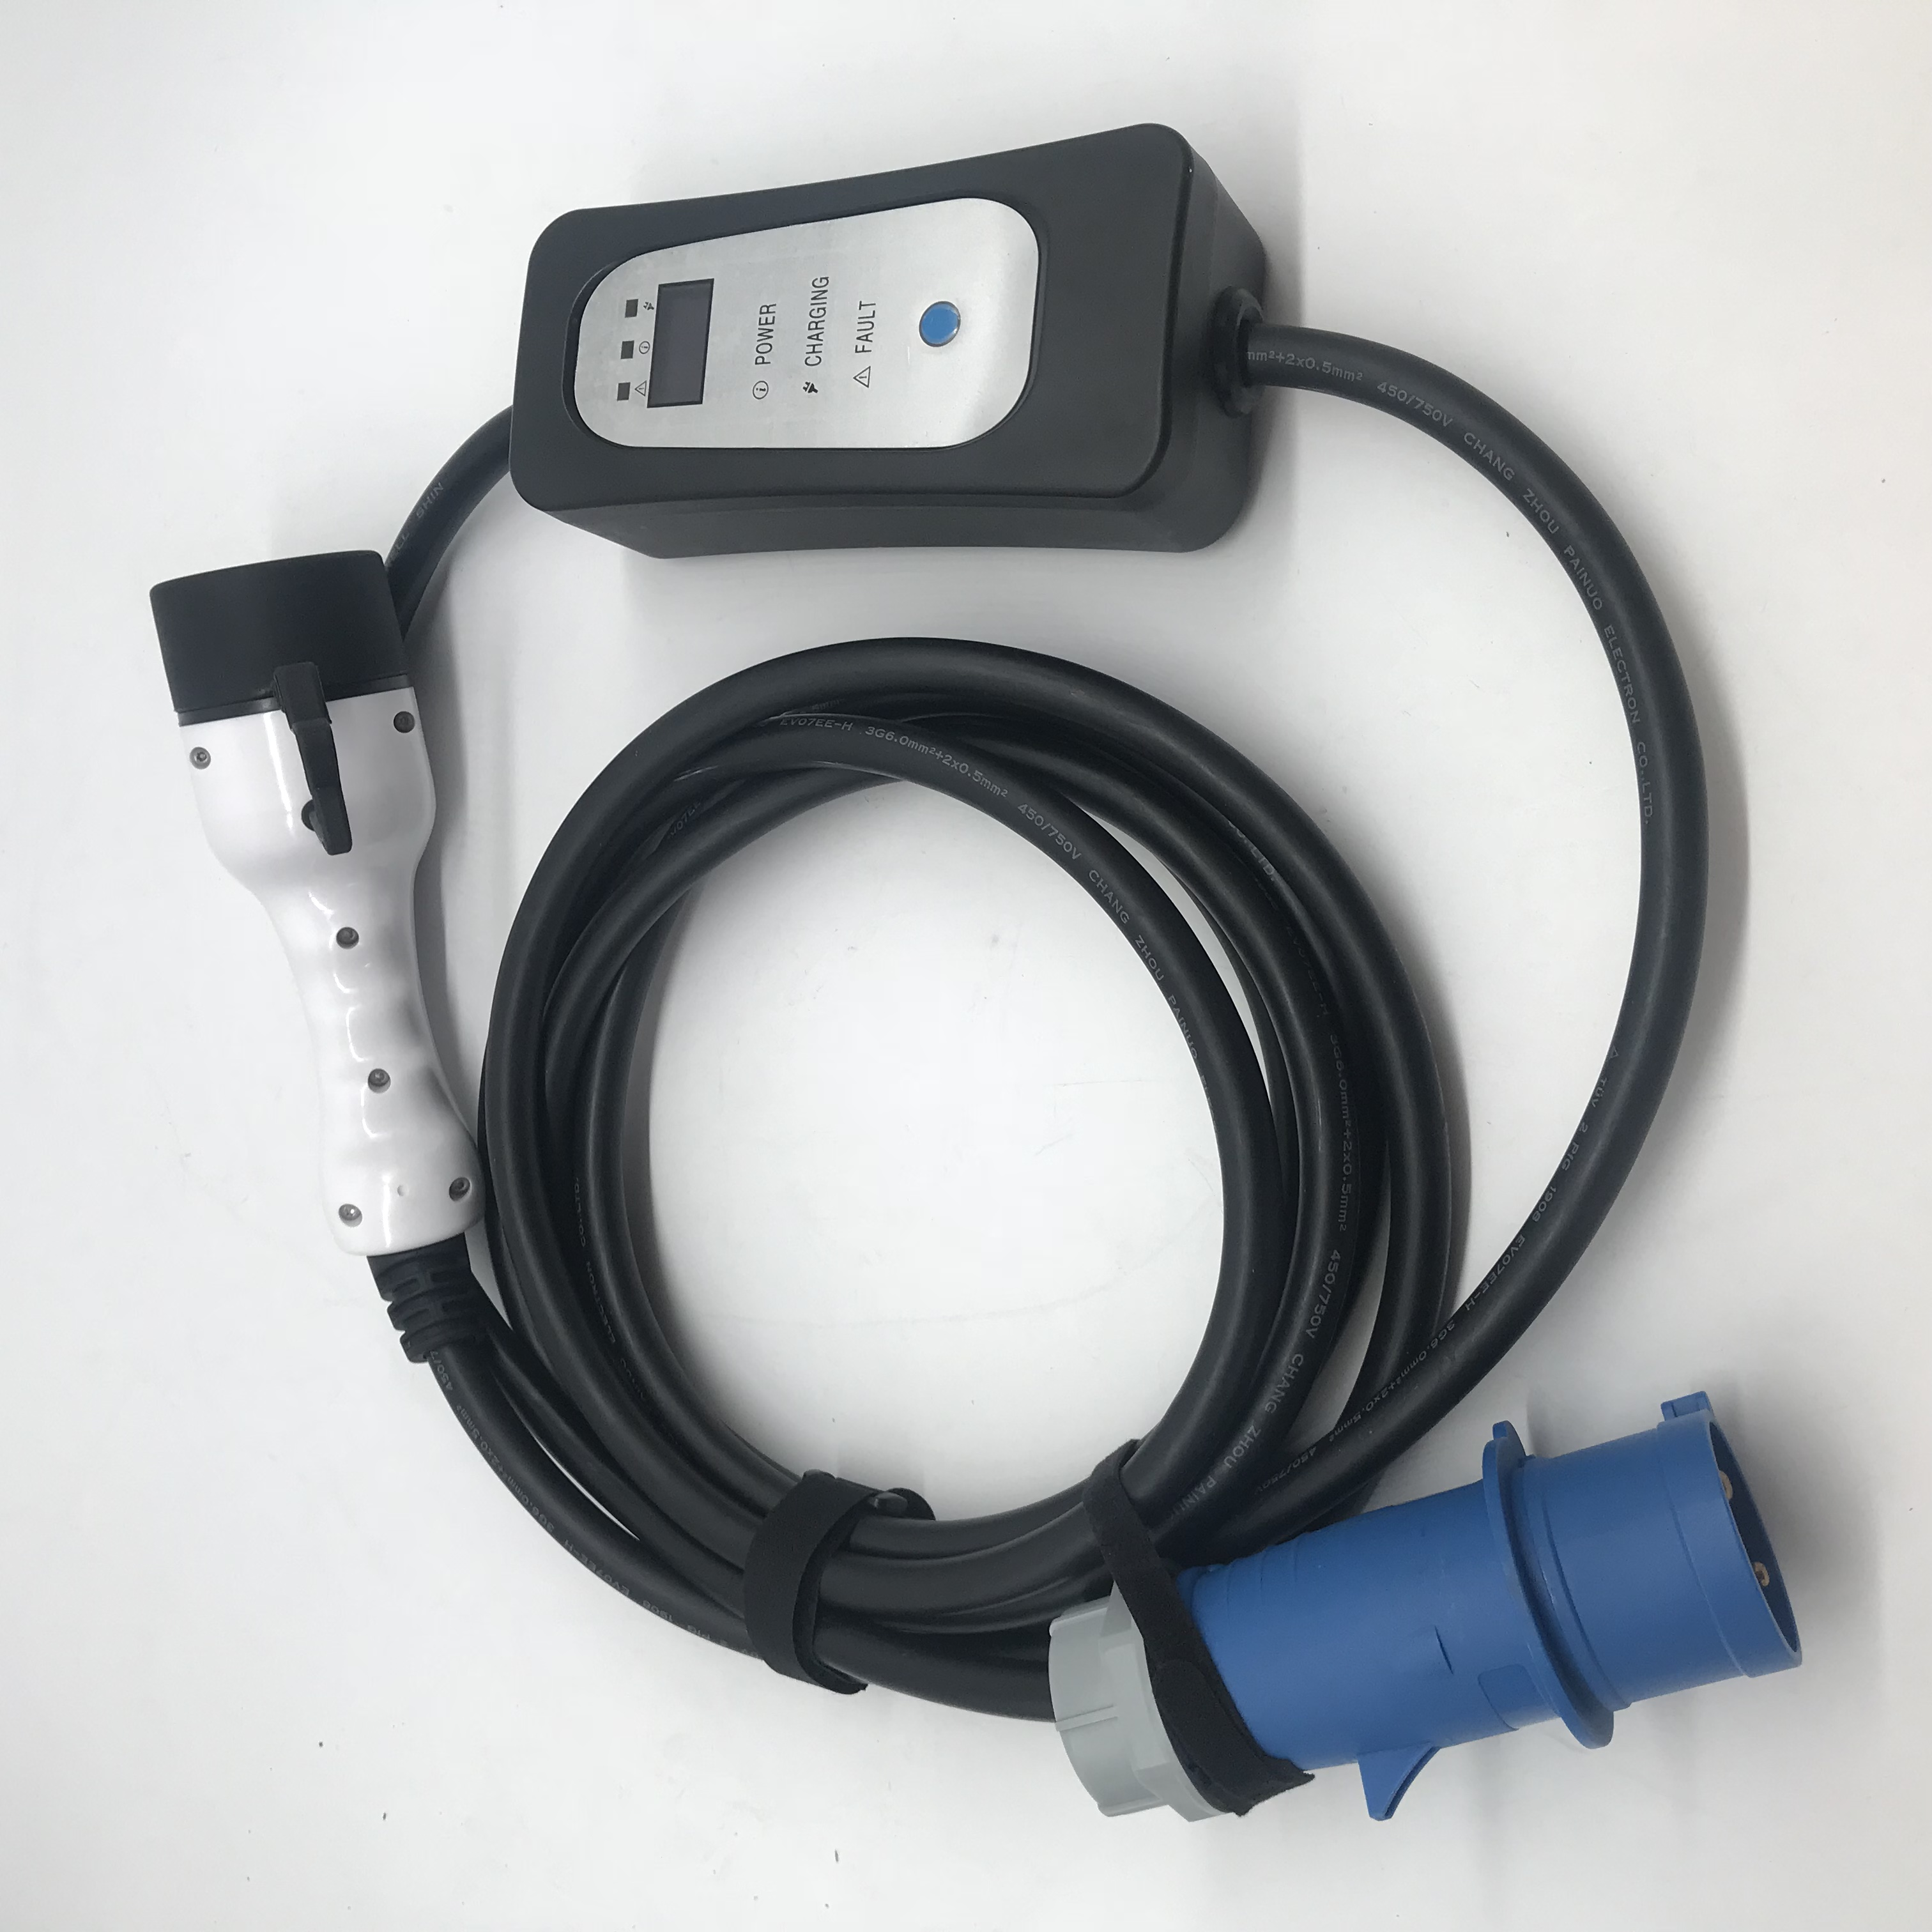 16A-32A Adjustable Mode 2 portable EV charger Type 1 Type 2 plug